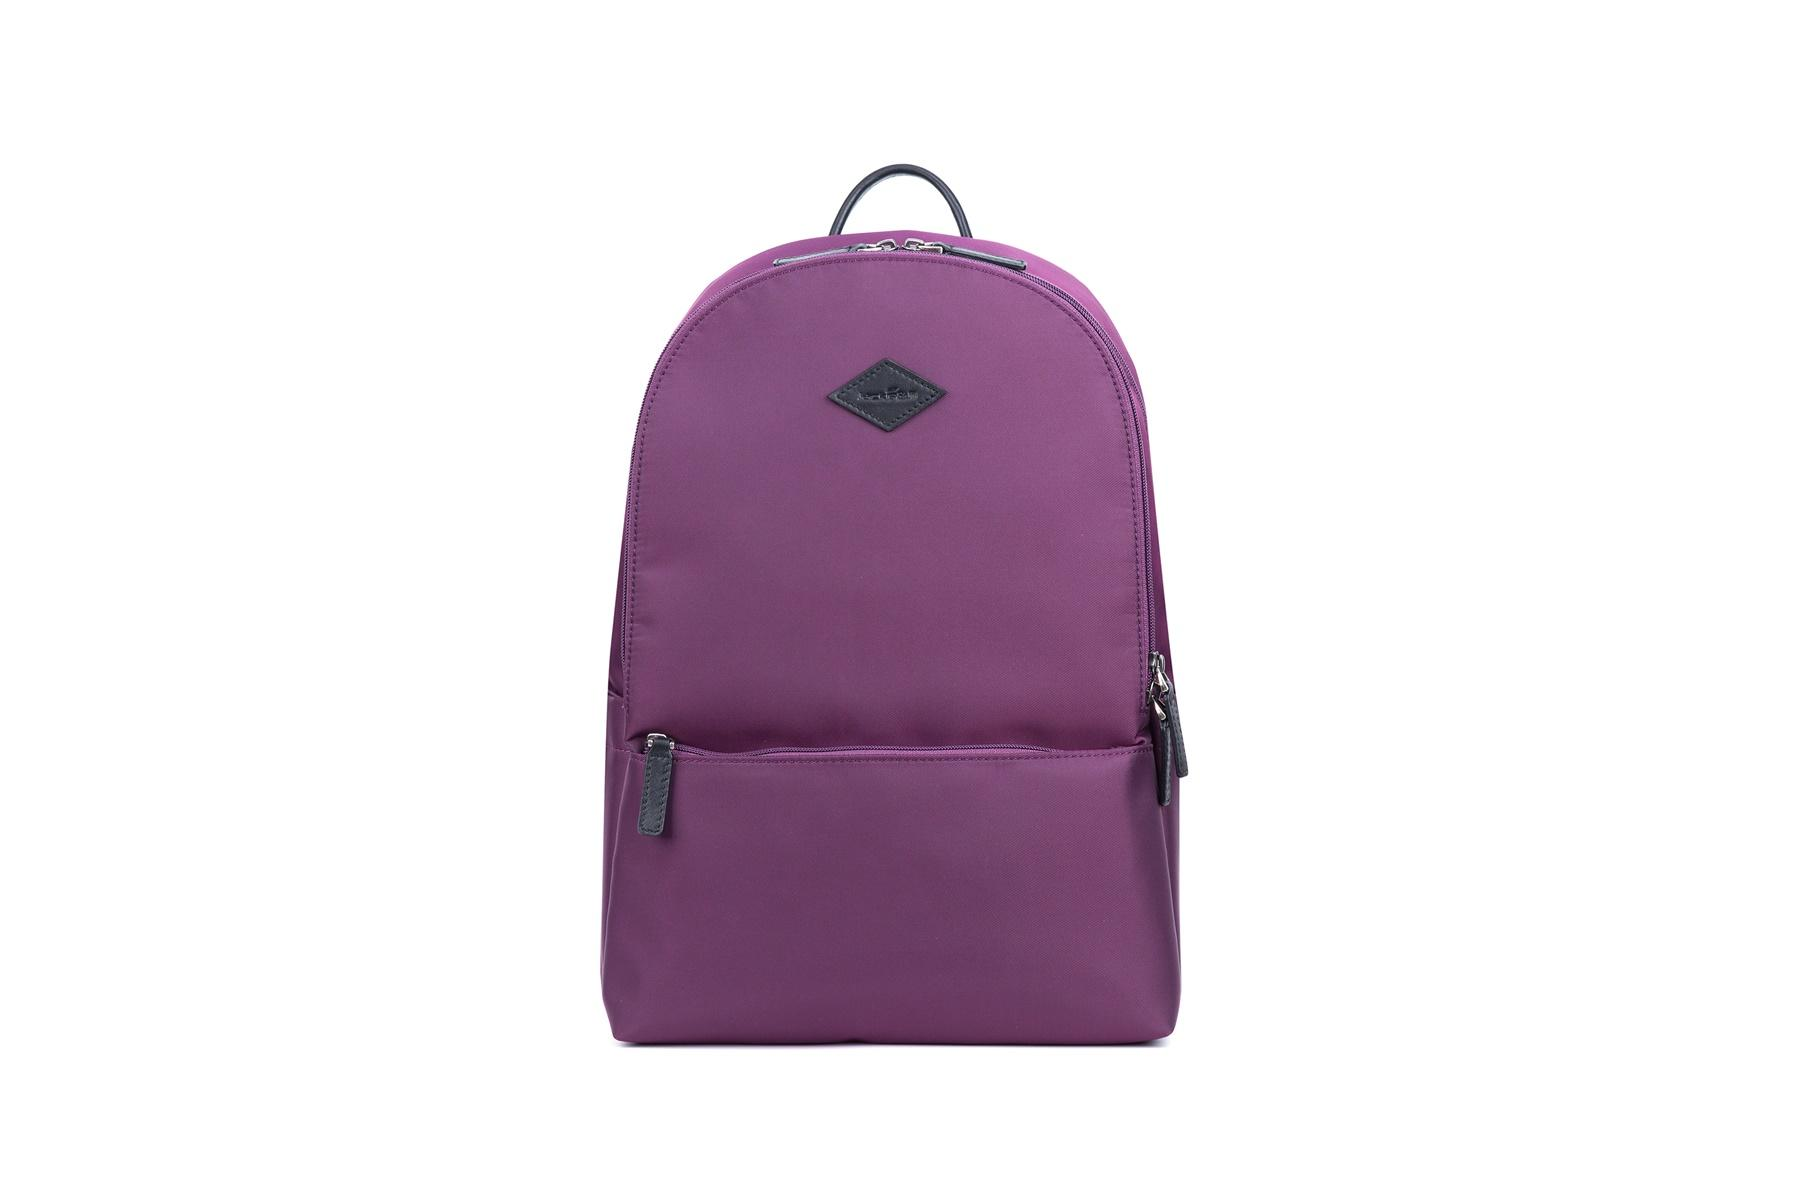 GF bags unique backpacks leather for school